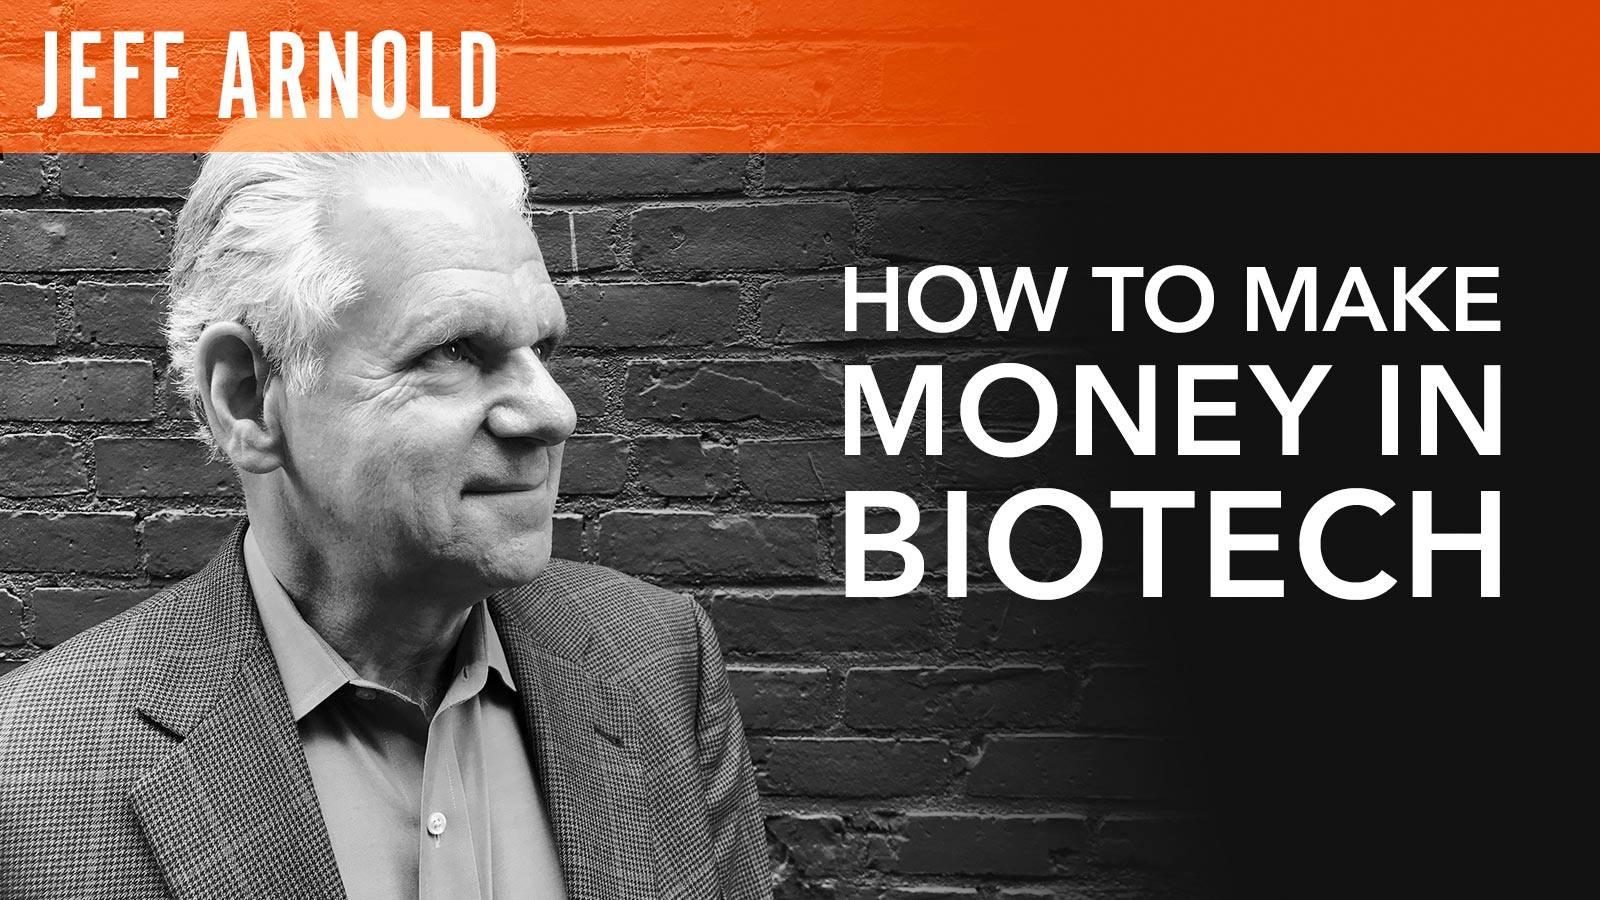 Jeff Arnold  How to Make Money in Biotech